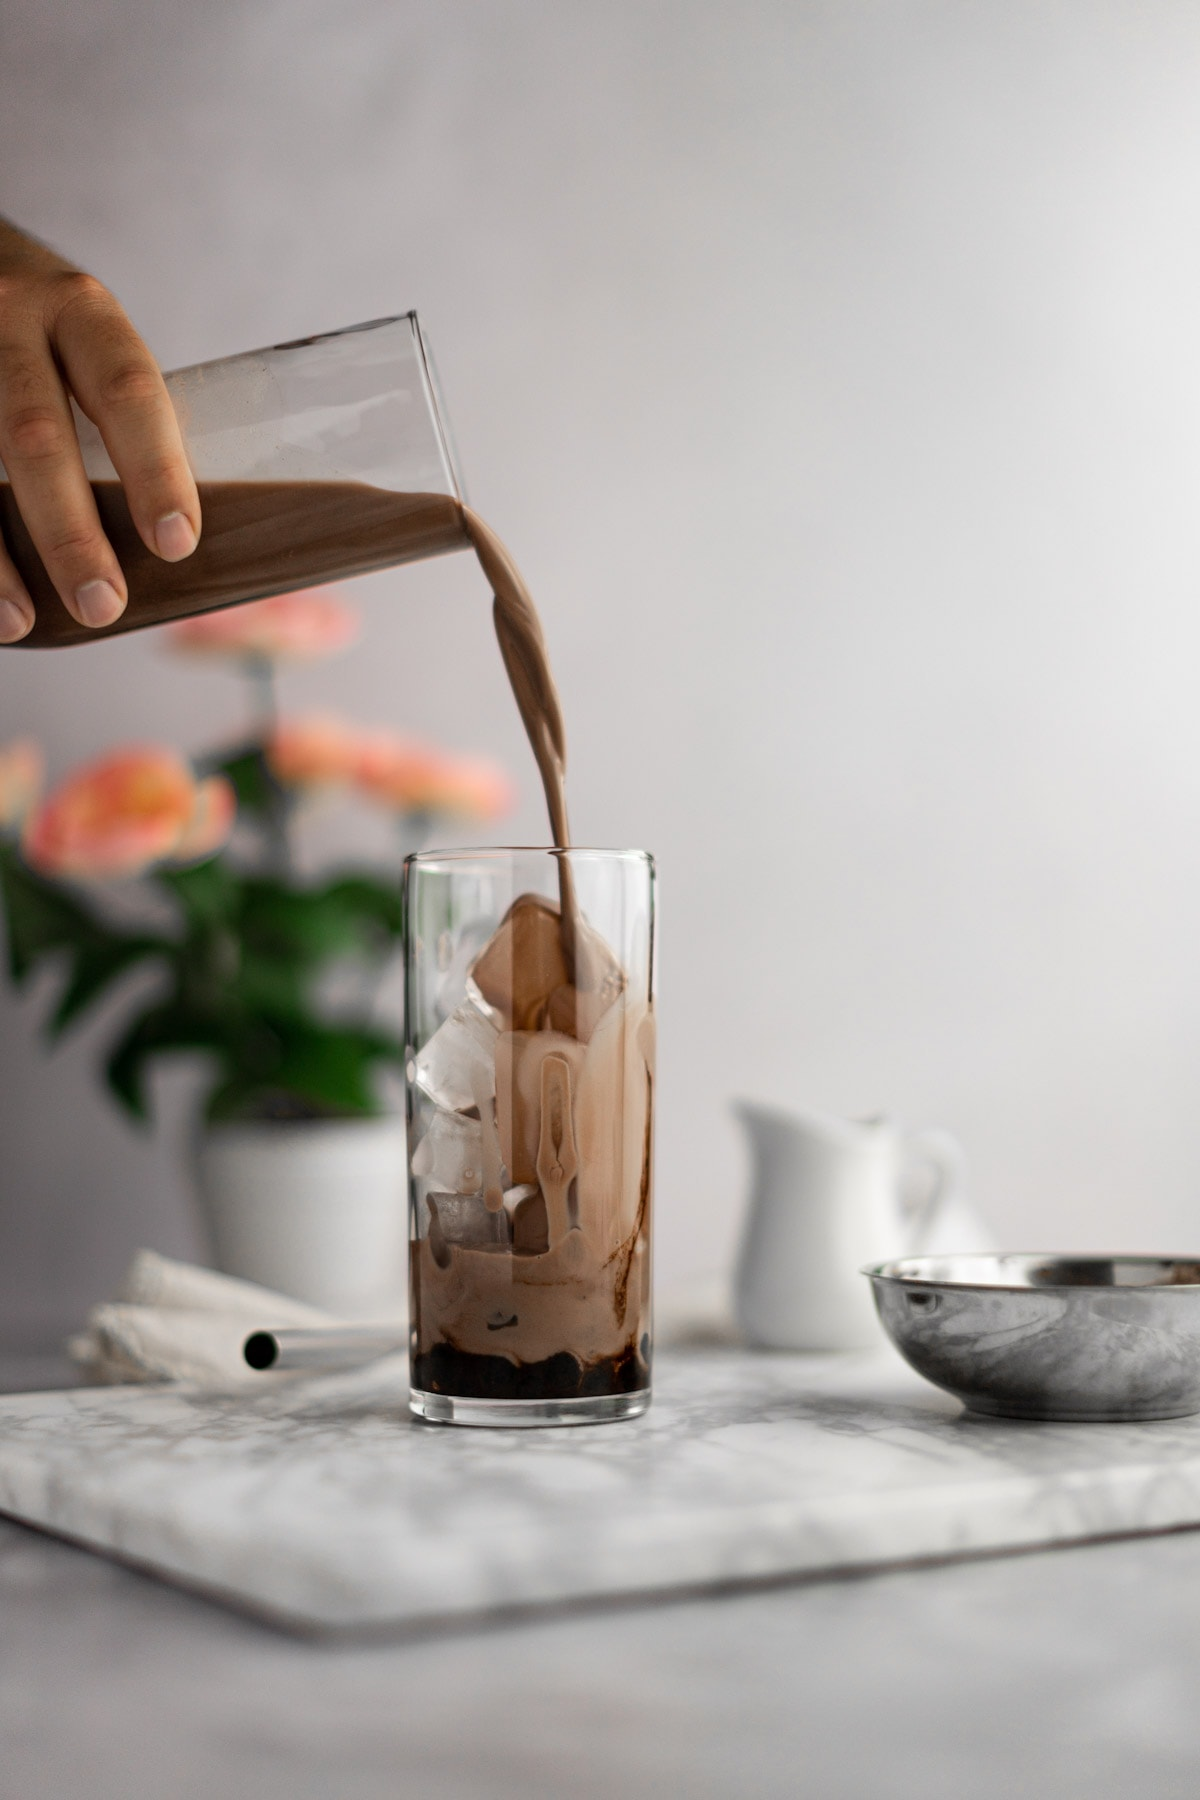 Chocolate milk tea being poured into an empty glass filled with ice and boba, on a white marble board, with pink flowers in the background.